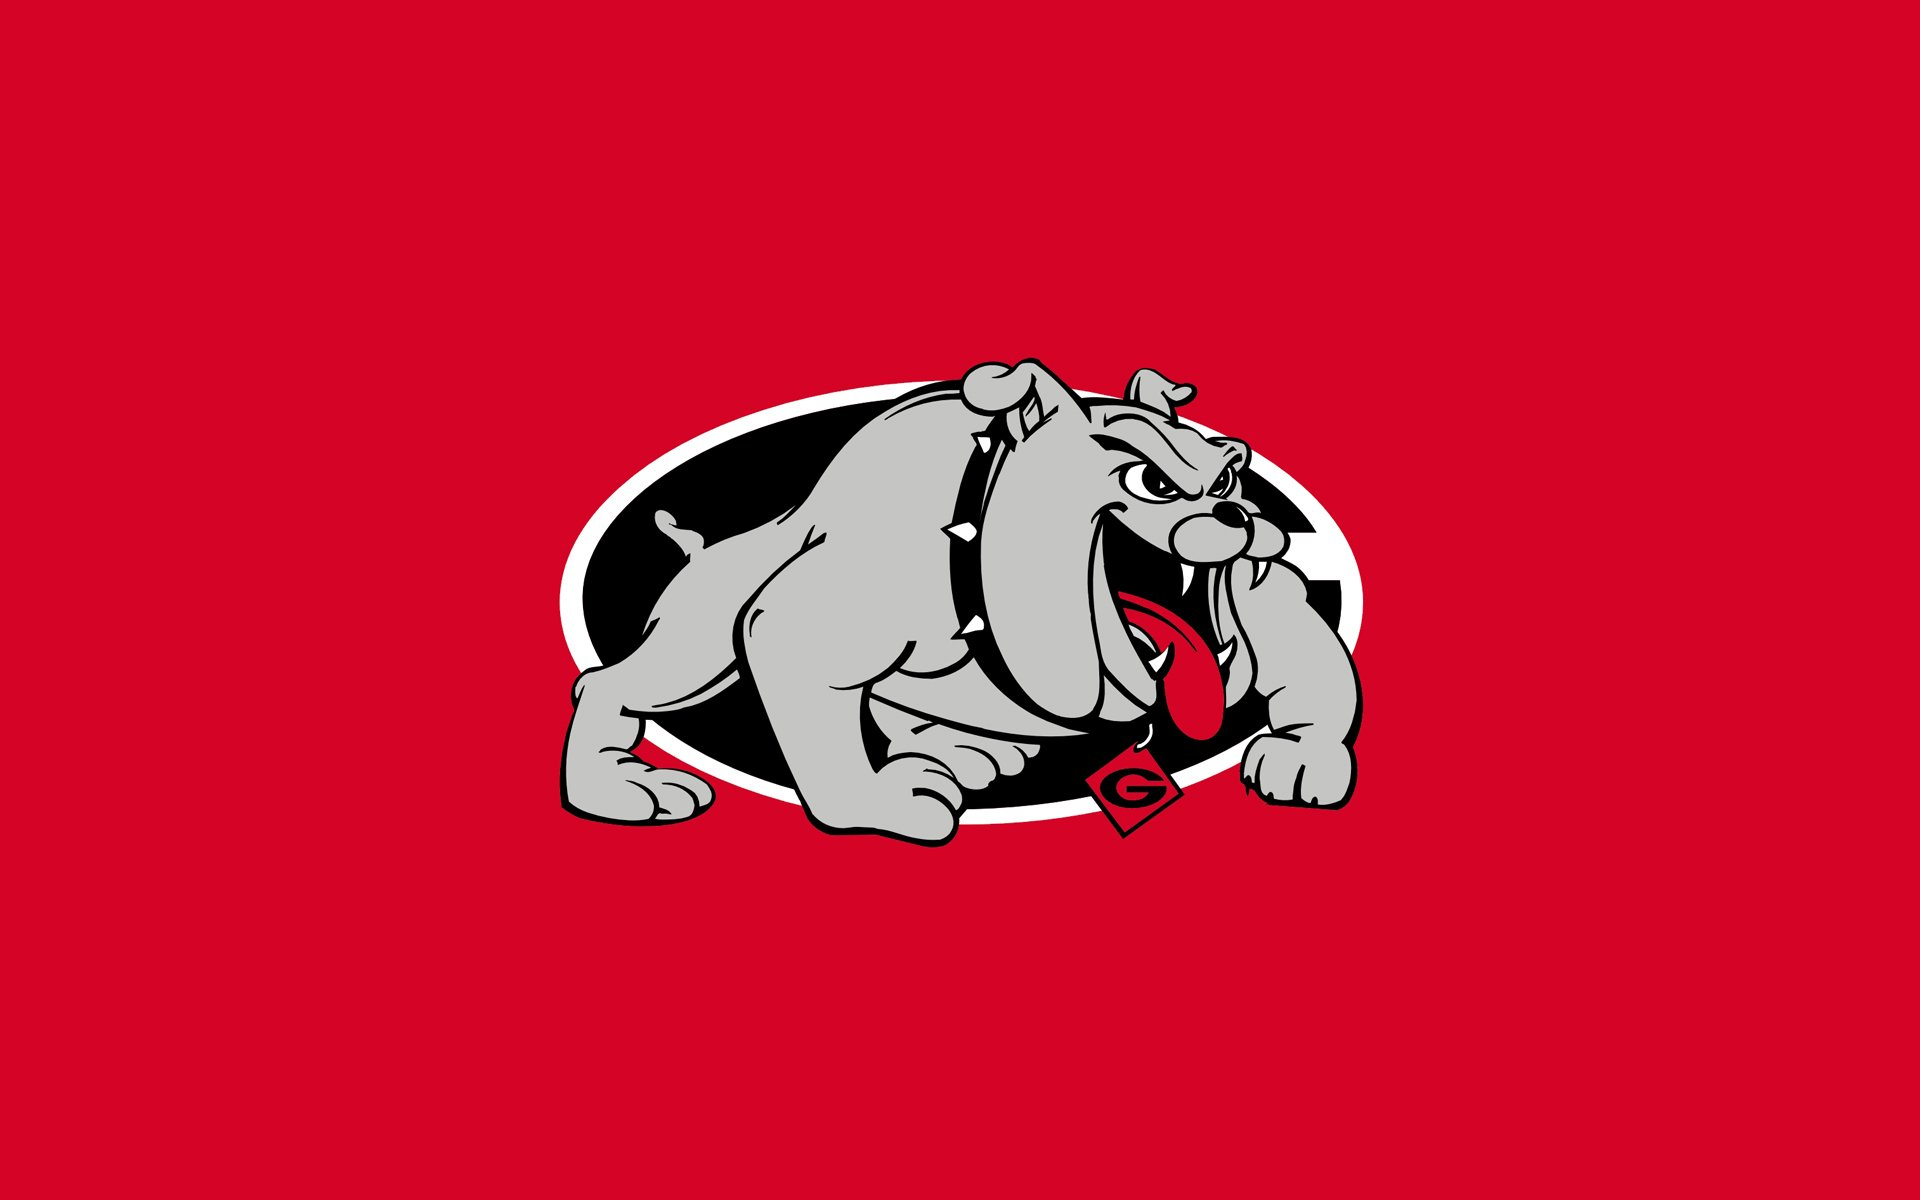 wallpaper details file name georgia bulldogs logo wallpaper uploaded 1920x1200